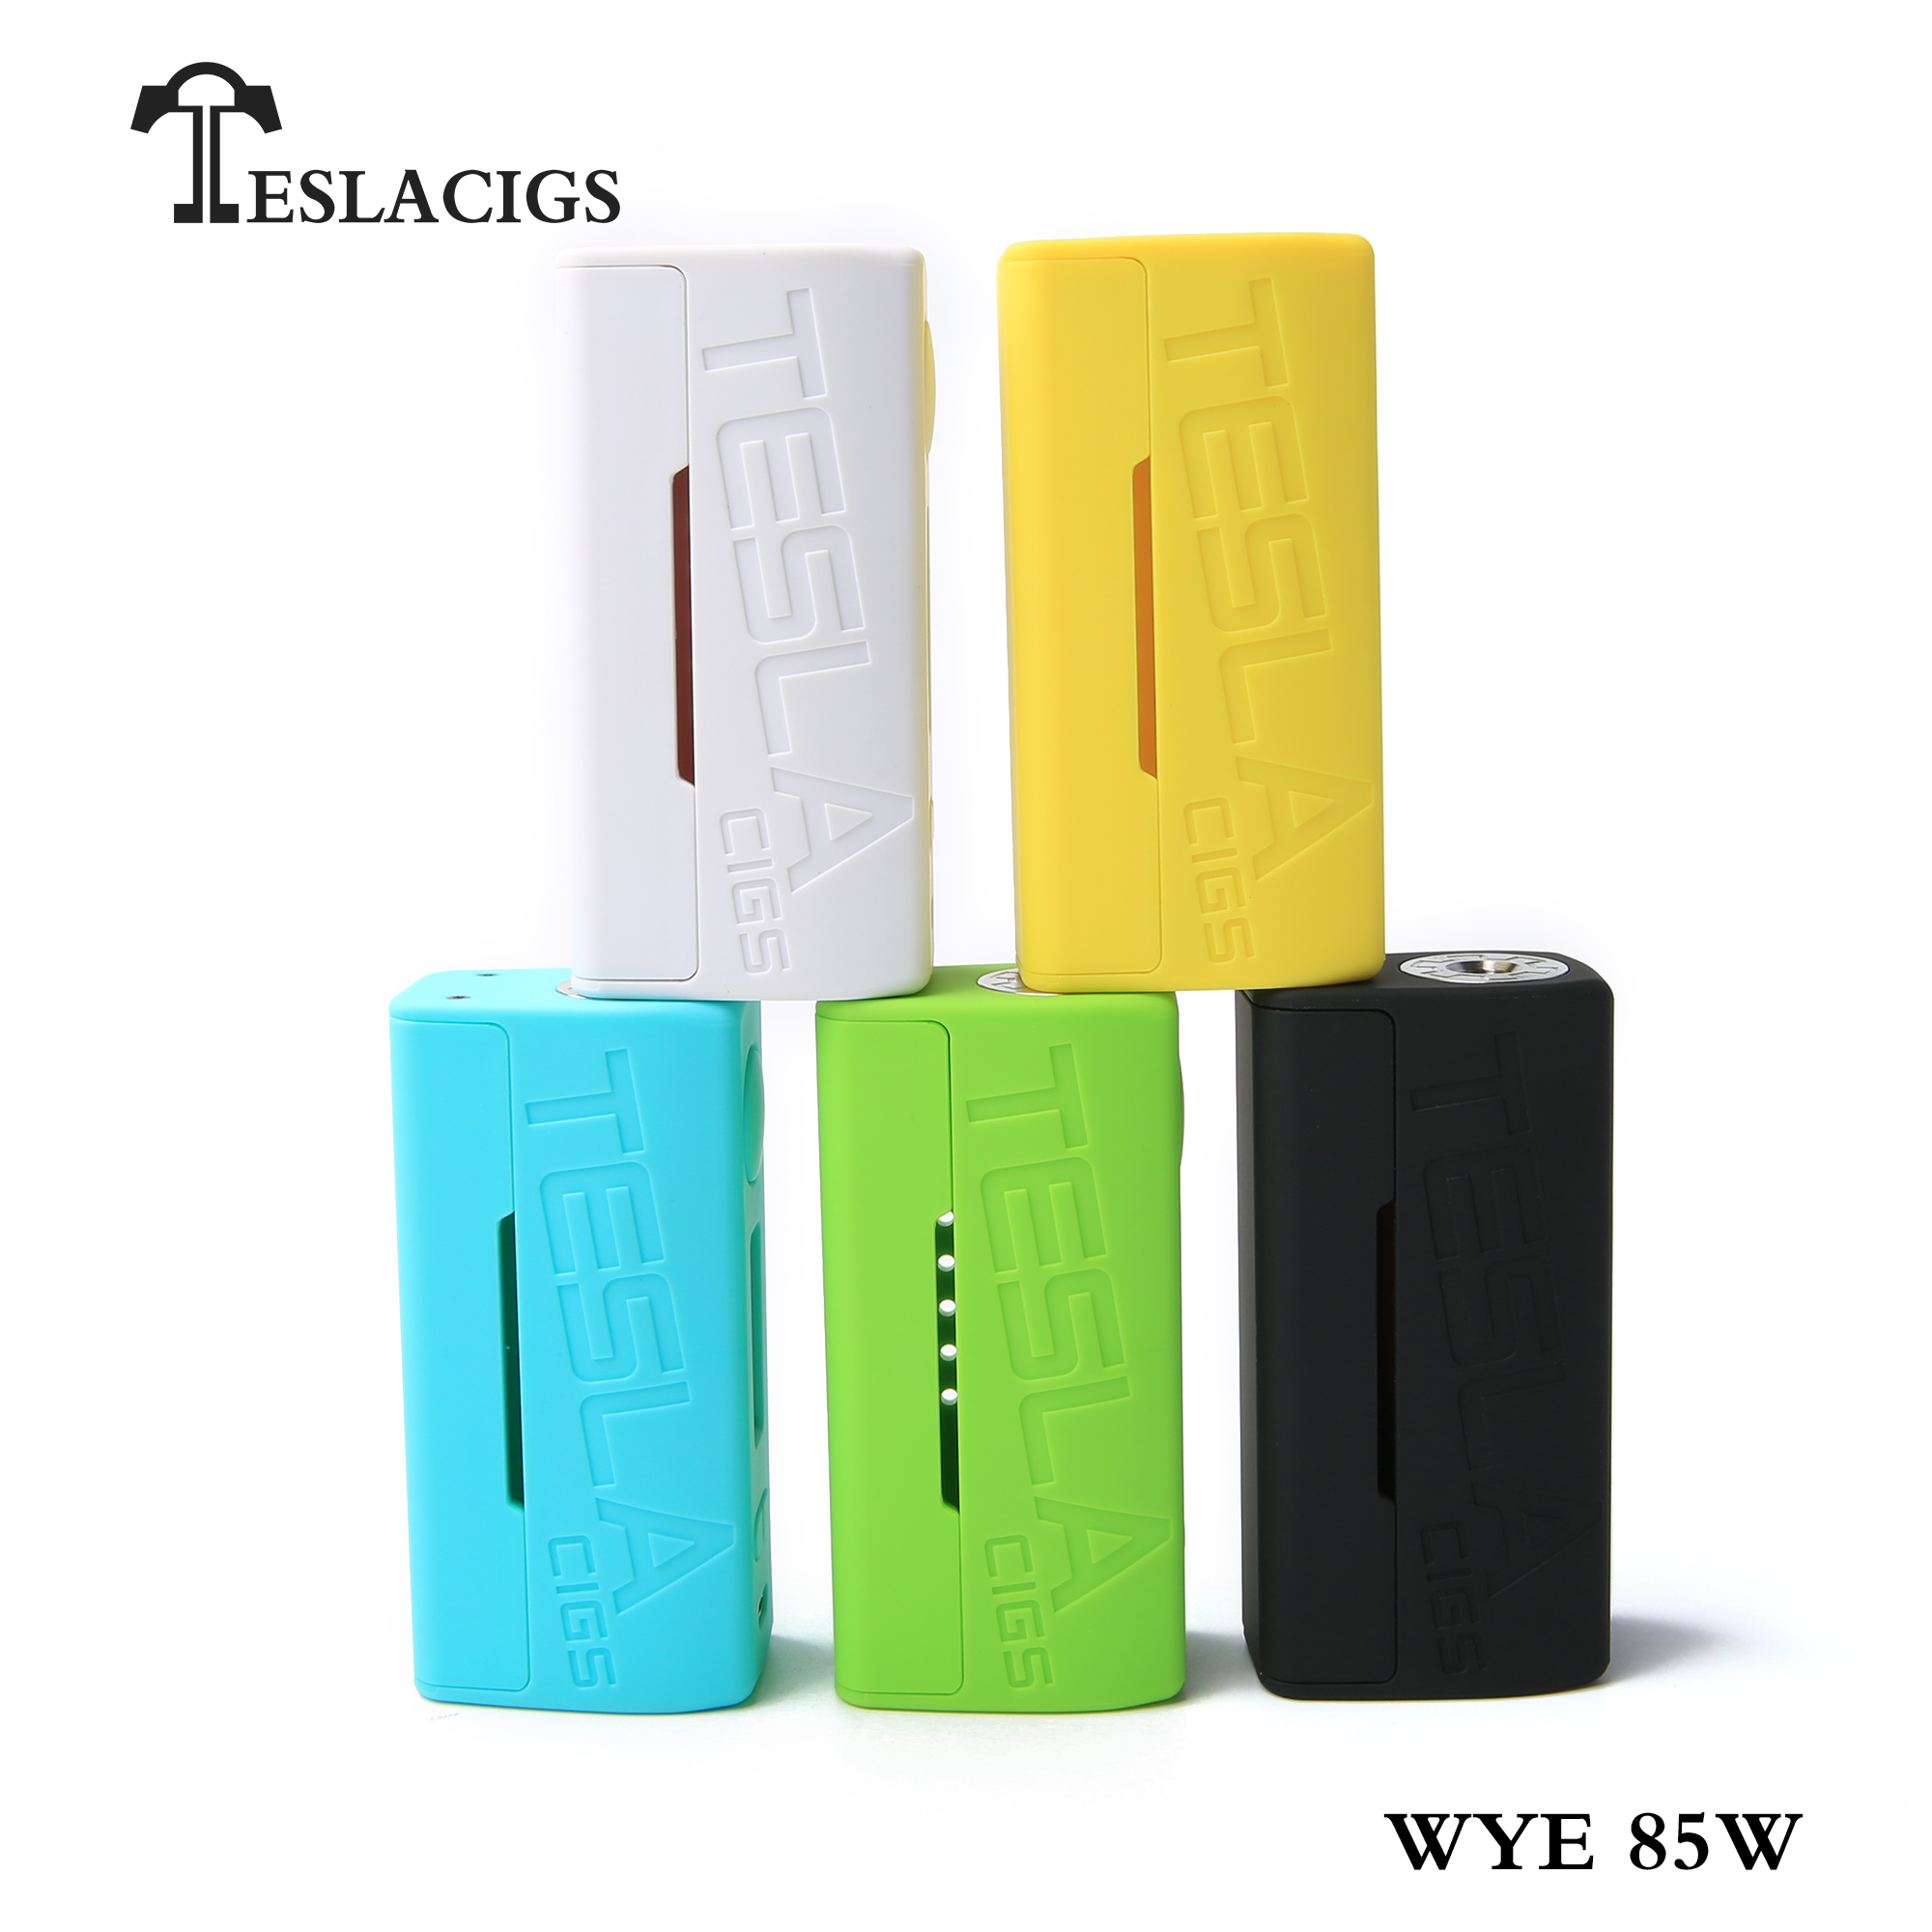 Quit smoking products Tesla WYE 85W mod vape mod eletronic cigarette box mod